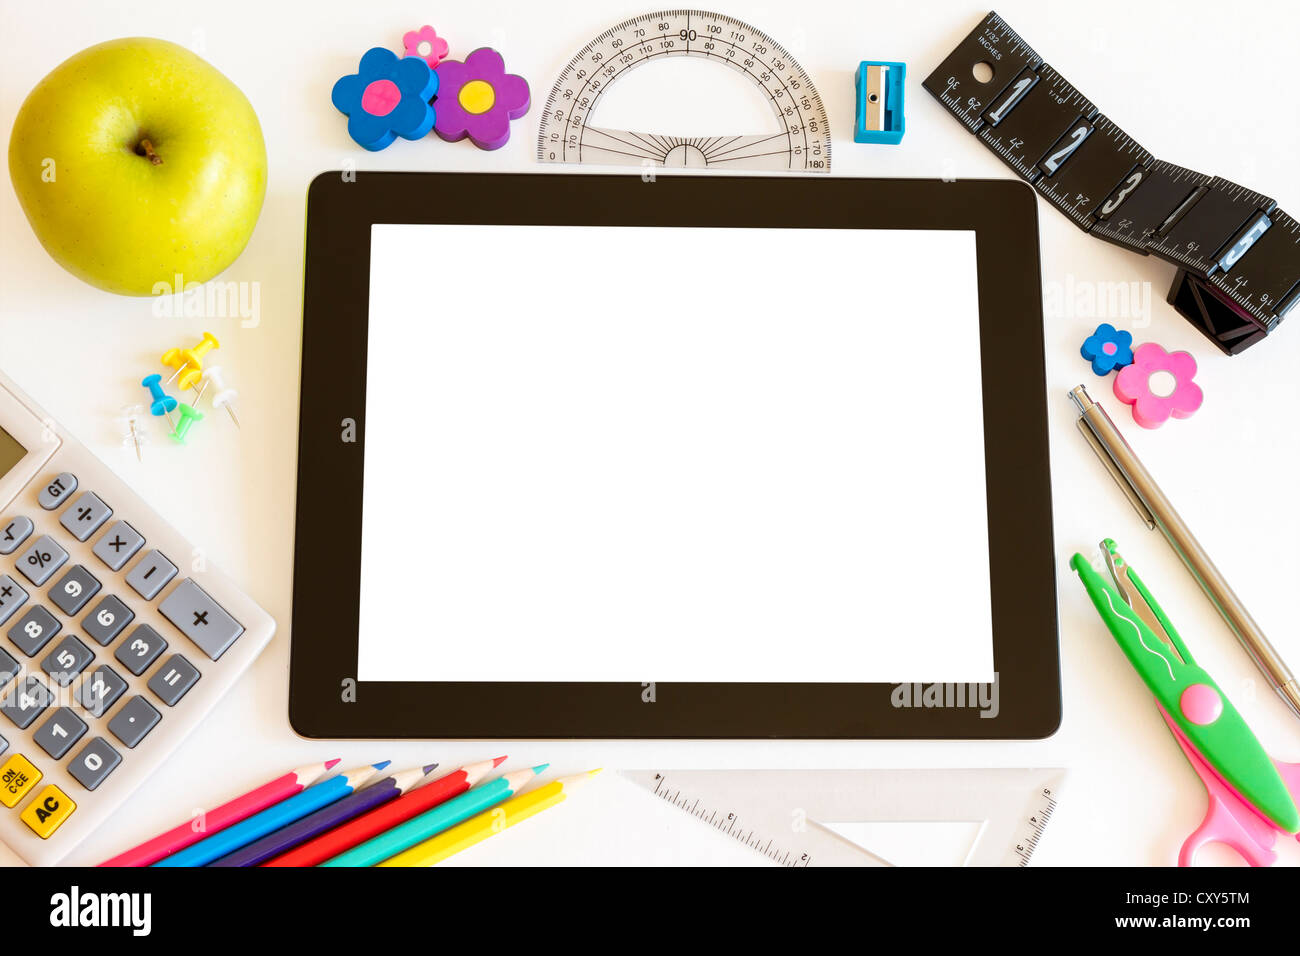 Tablet PC with school accesories on white background - Stock Image